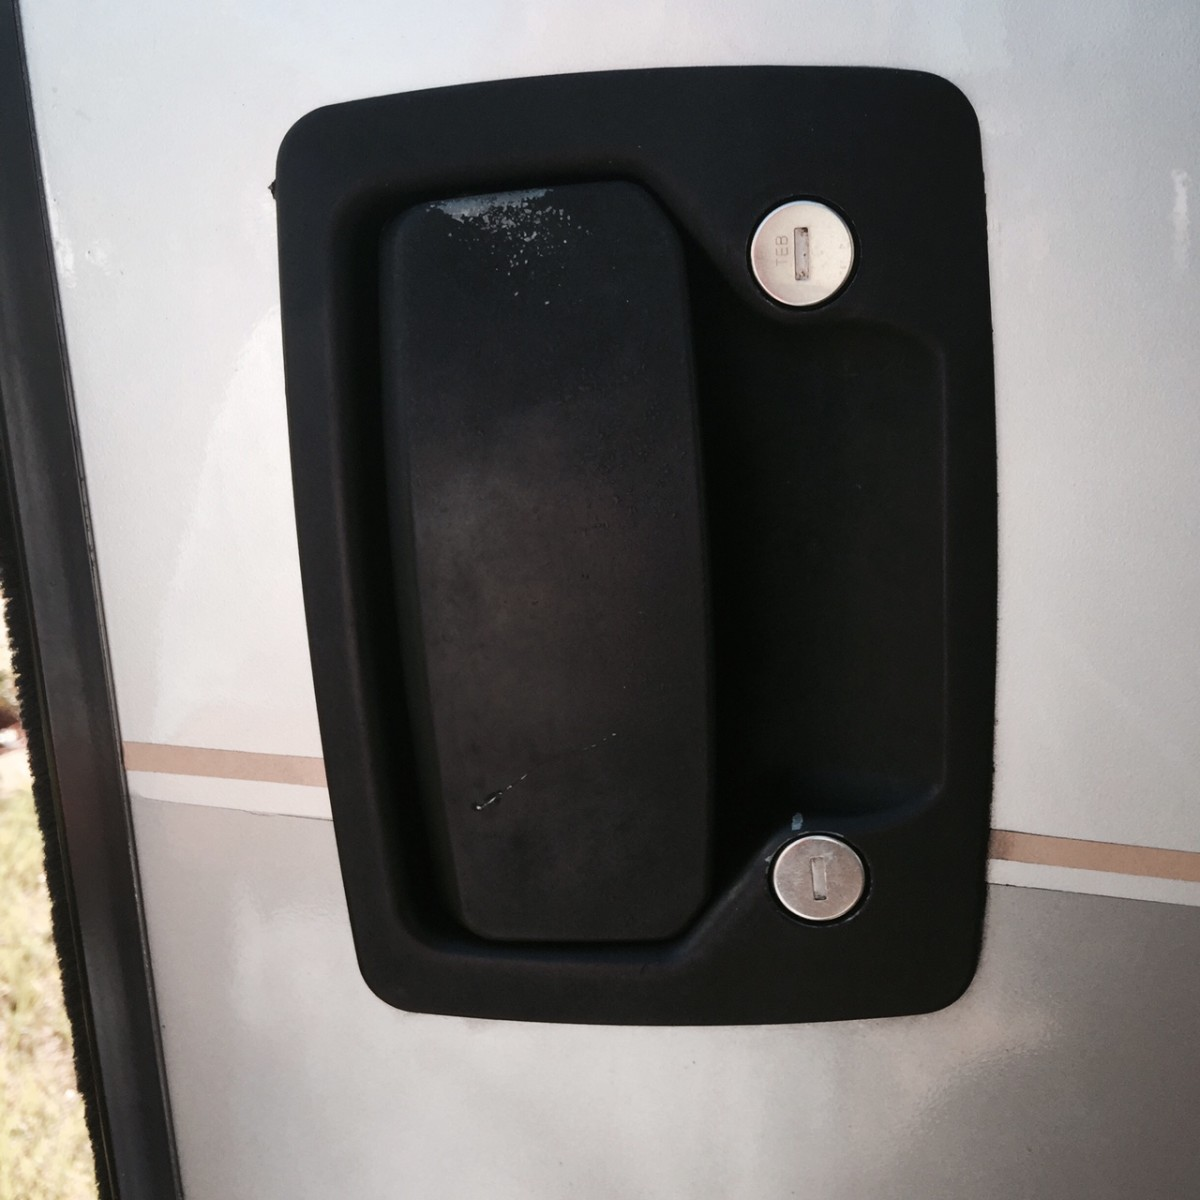 Popular When This RVing Couple Noticed The Key To Their Old Trailer Opened The Front Door To Their New Trailer, They Decided To Upgrade To The RV Lock You Wouldnt Give Out Copies Of Your RV Keys To Thousands Of People, But Thats Exactly What